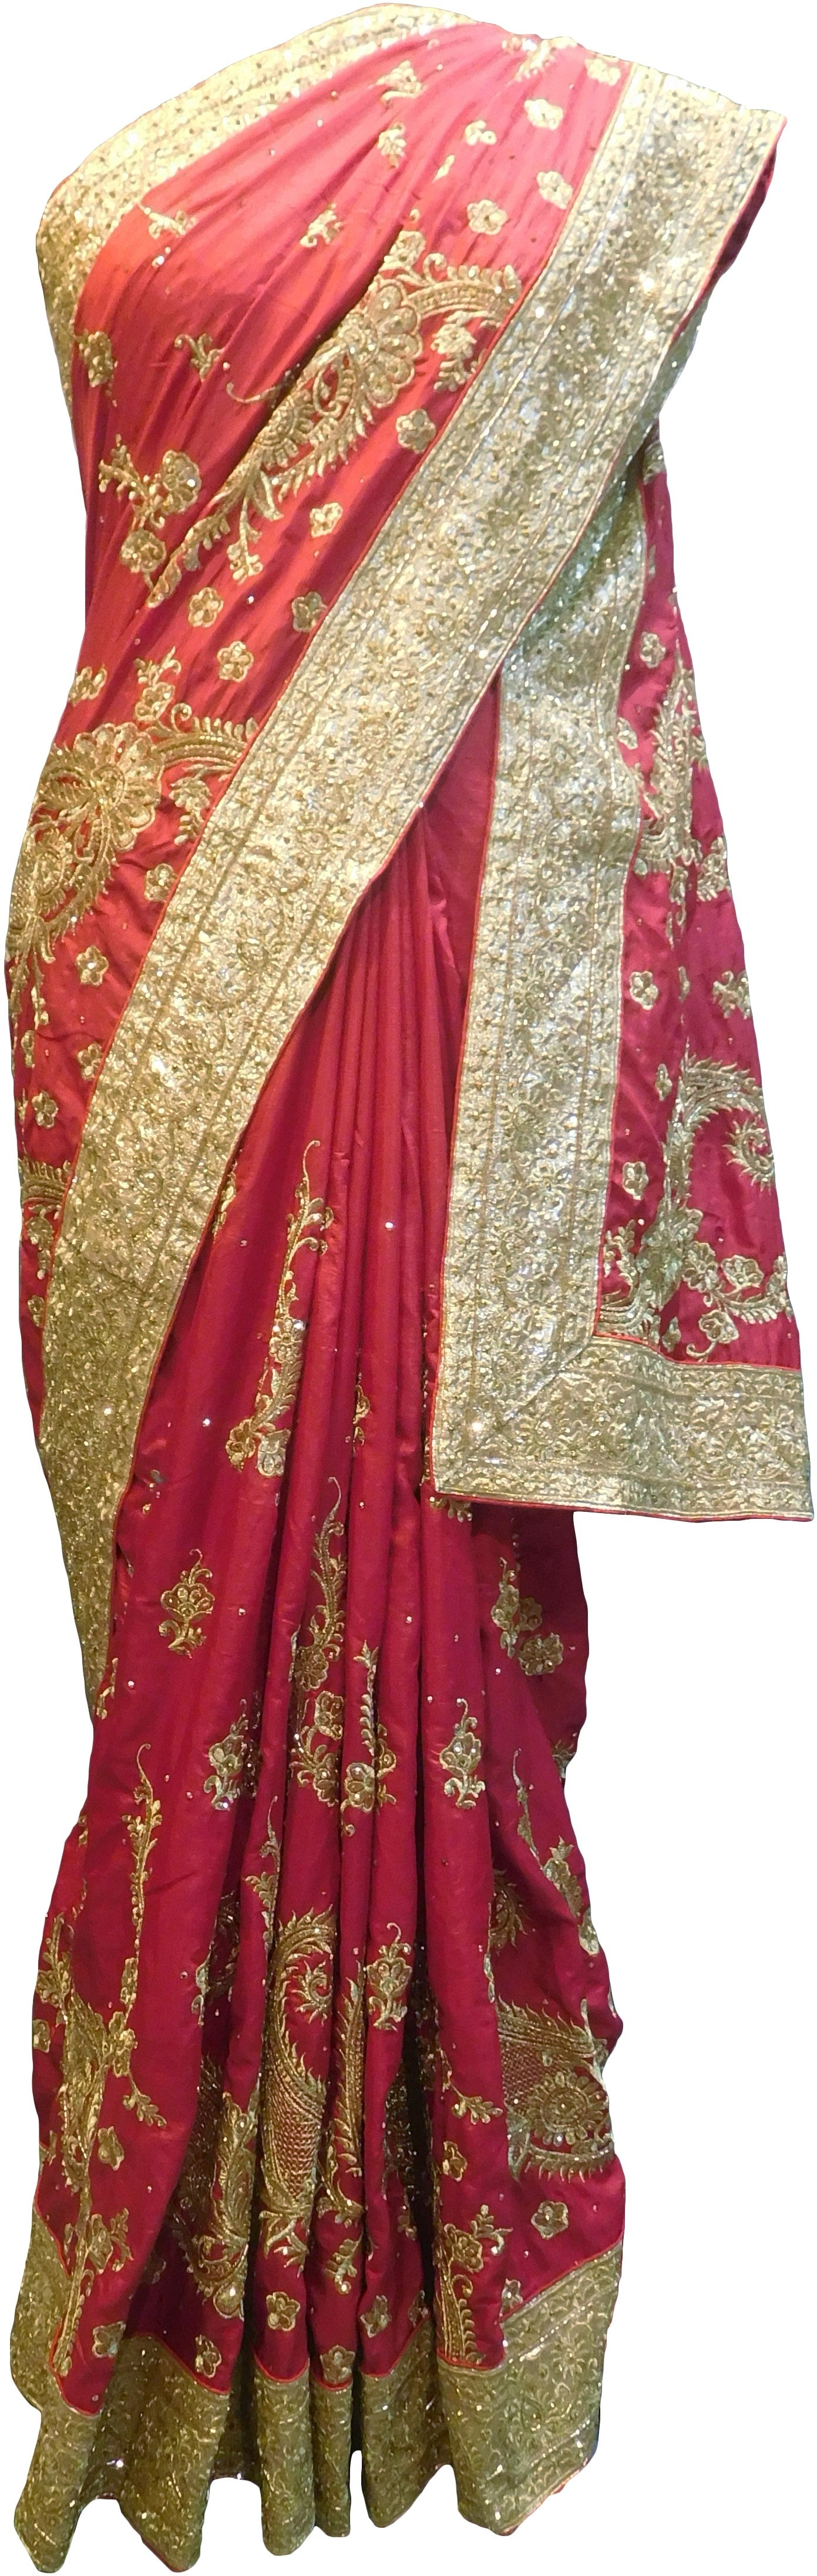 SMSAREE Red Designer Wedding Partywear Silk Stone Cutdana & Zari Hand Embroidery Work Bridal Saree Sari With Blouse Piece F257